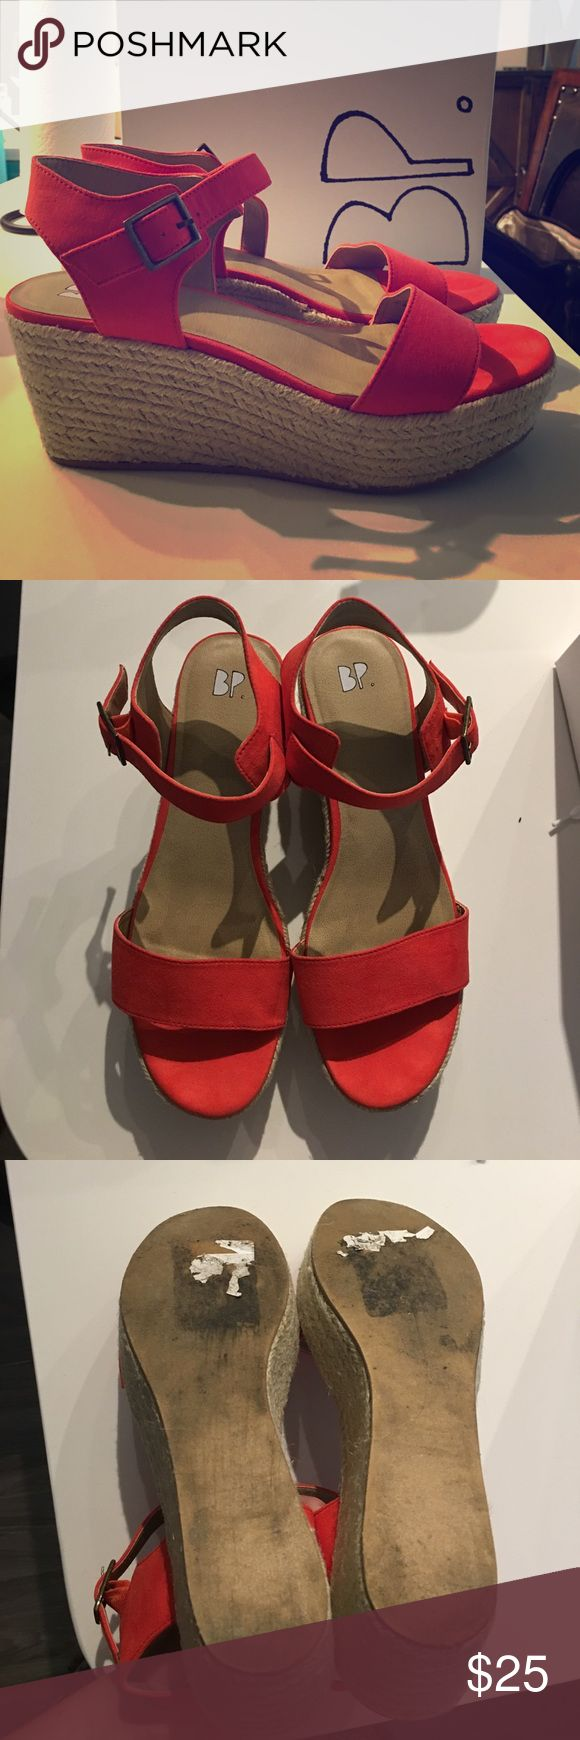 Adorable BP Red Suede Espadrille Wedges Adorable, like new BP red suede espadrille wedges. Worn twice. Shoes in perfect condition with light show of wear on bottom.  Comfortable!   Couple inch wedge with platform in front.  Original box from Nordstrom included. BP Shoes Espadrilles